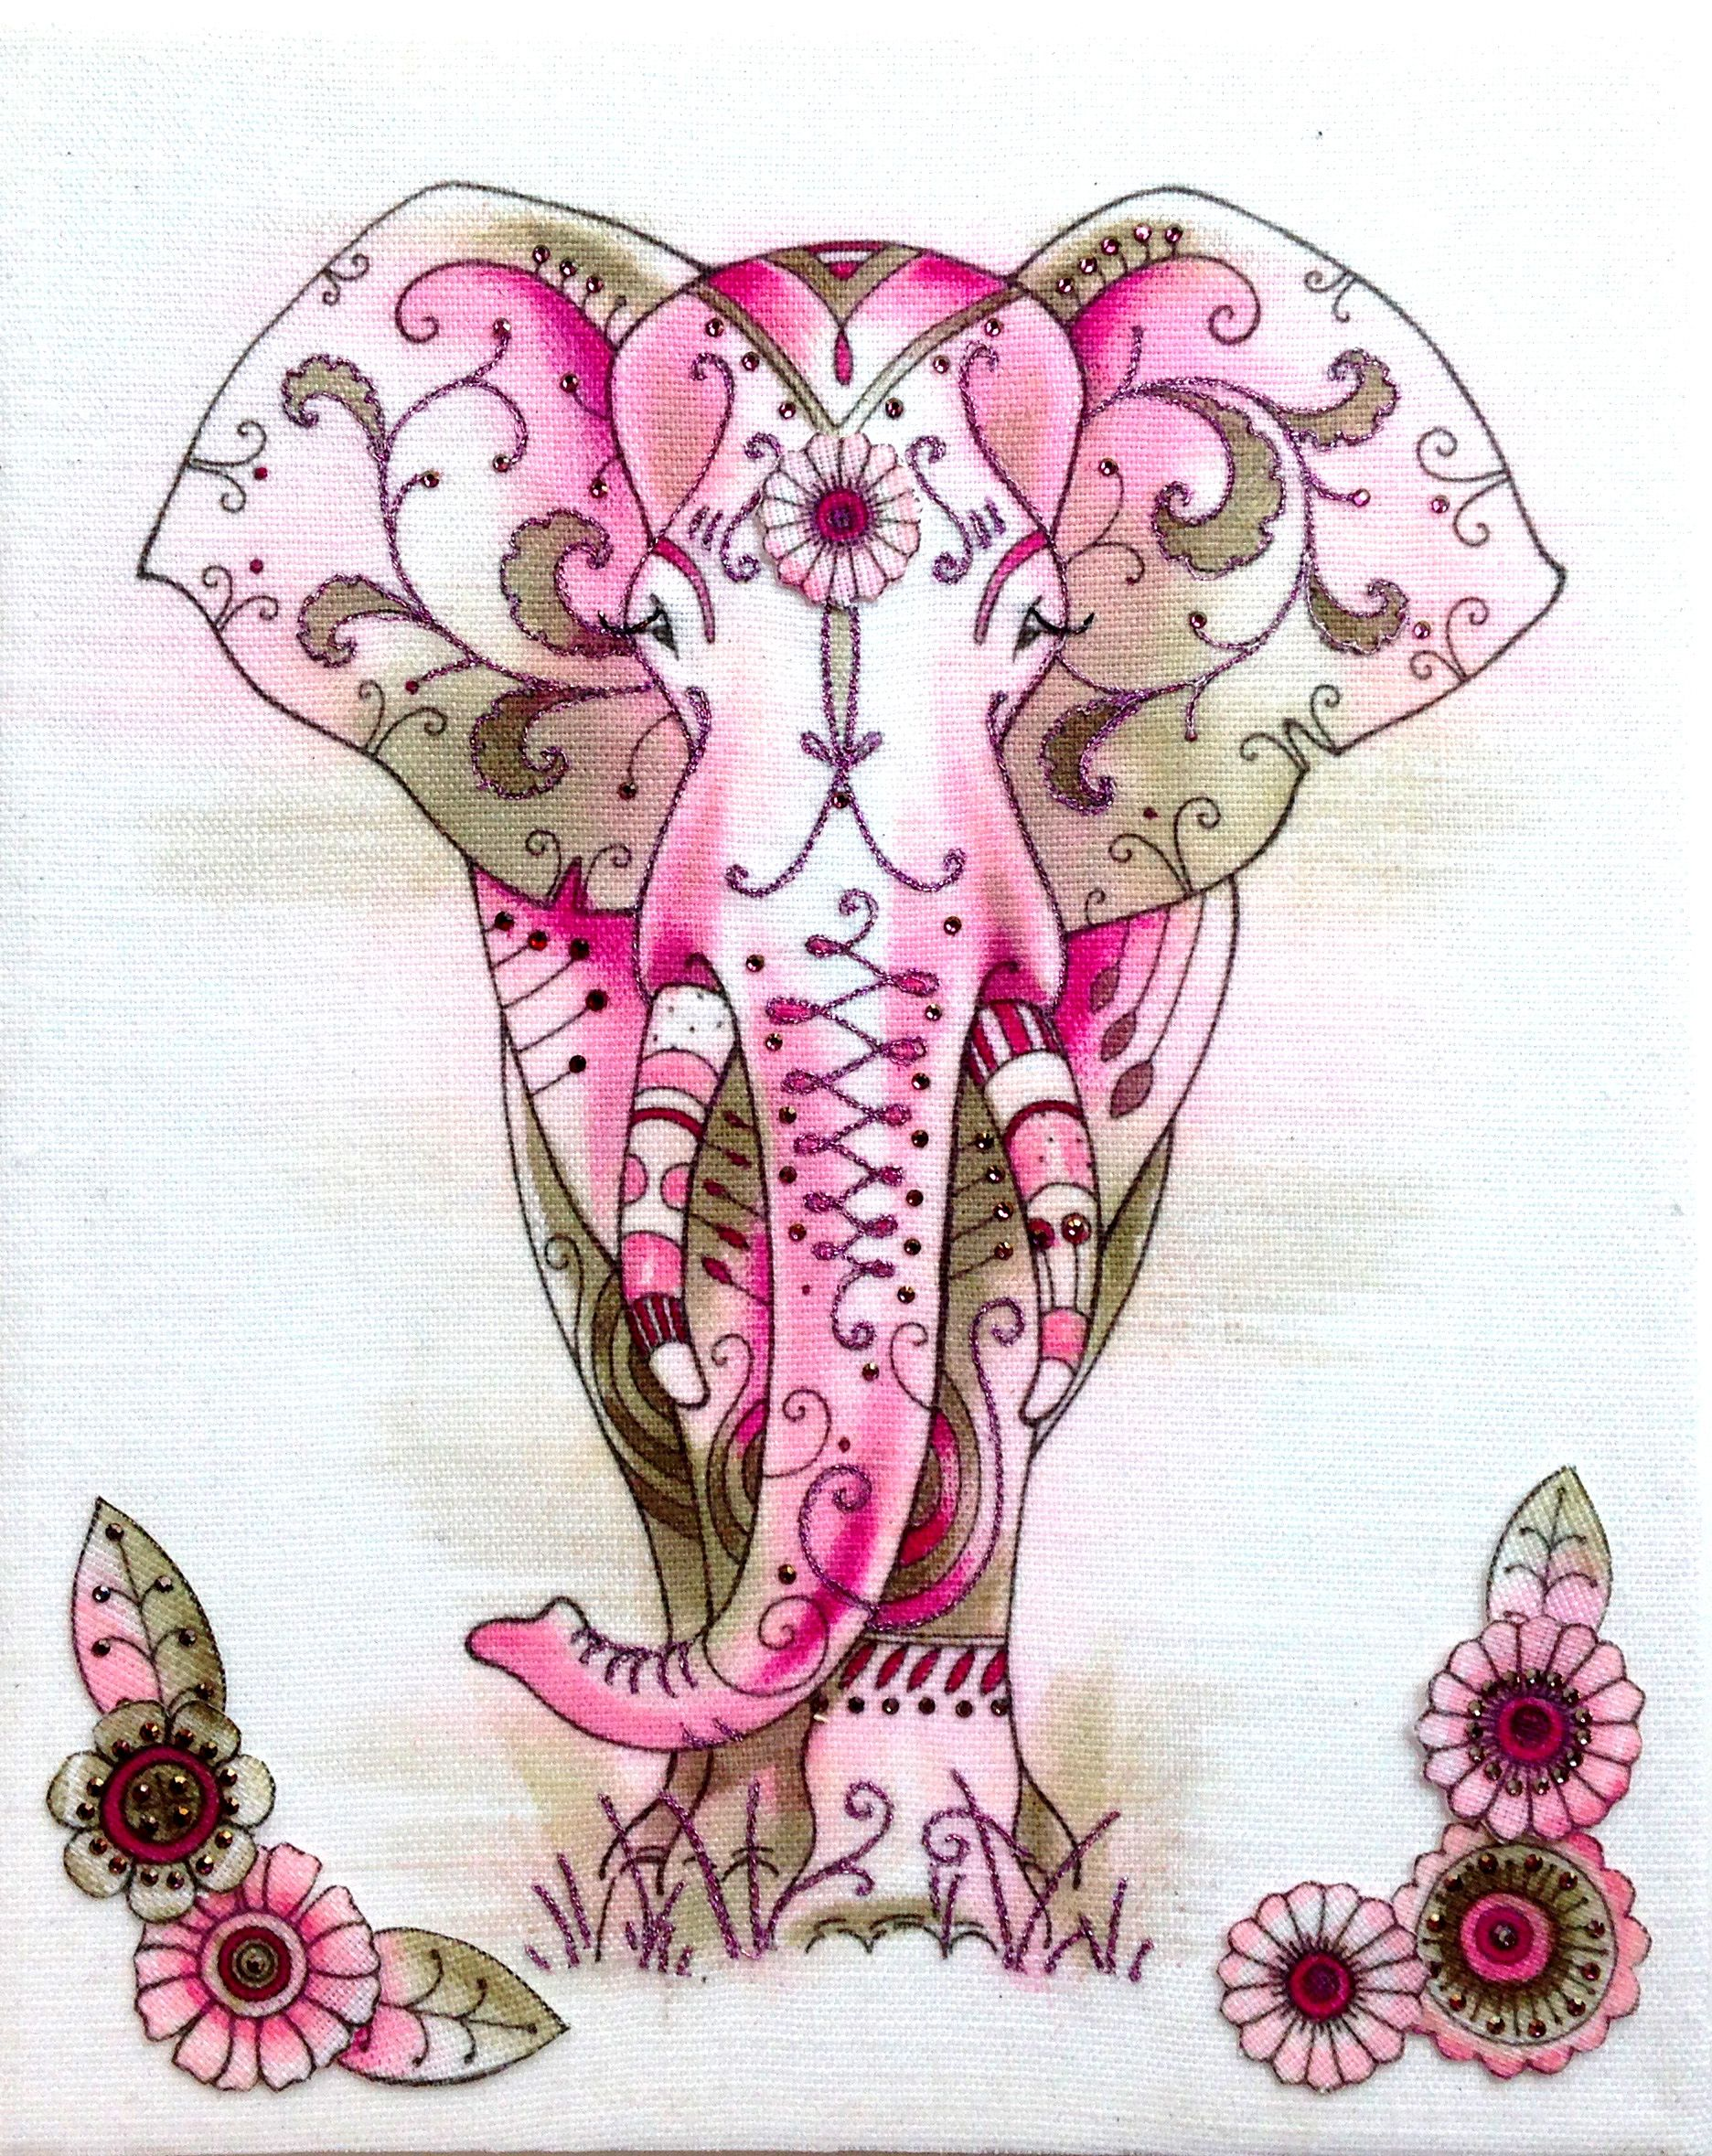 Free motion embroidery patterns, Pink Elephant! Free